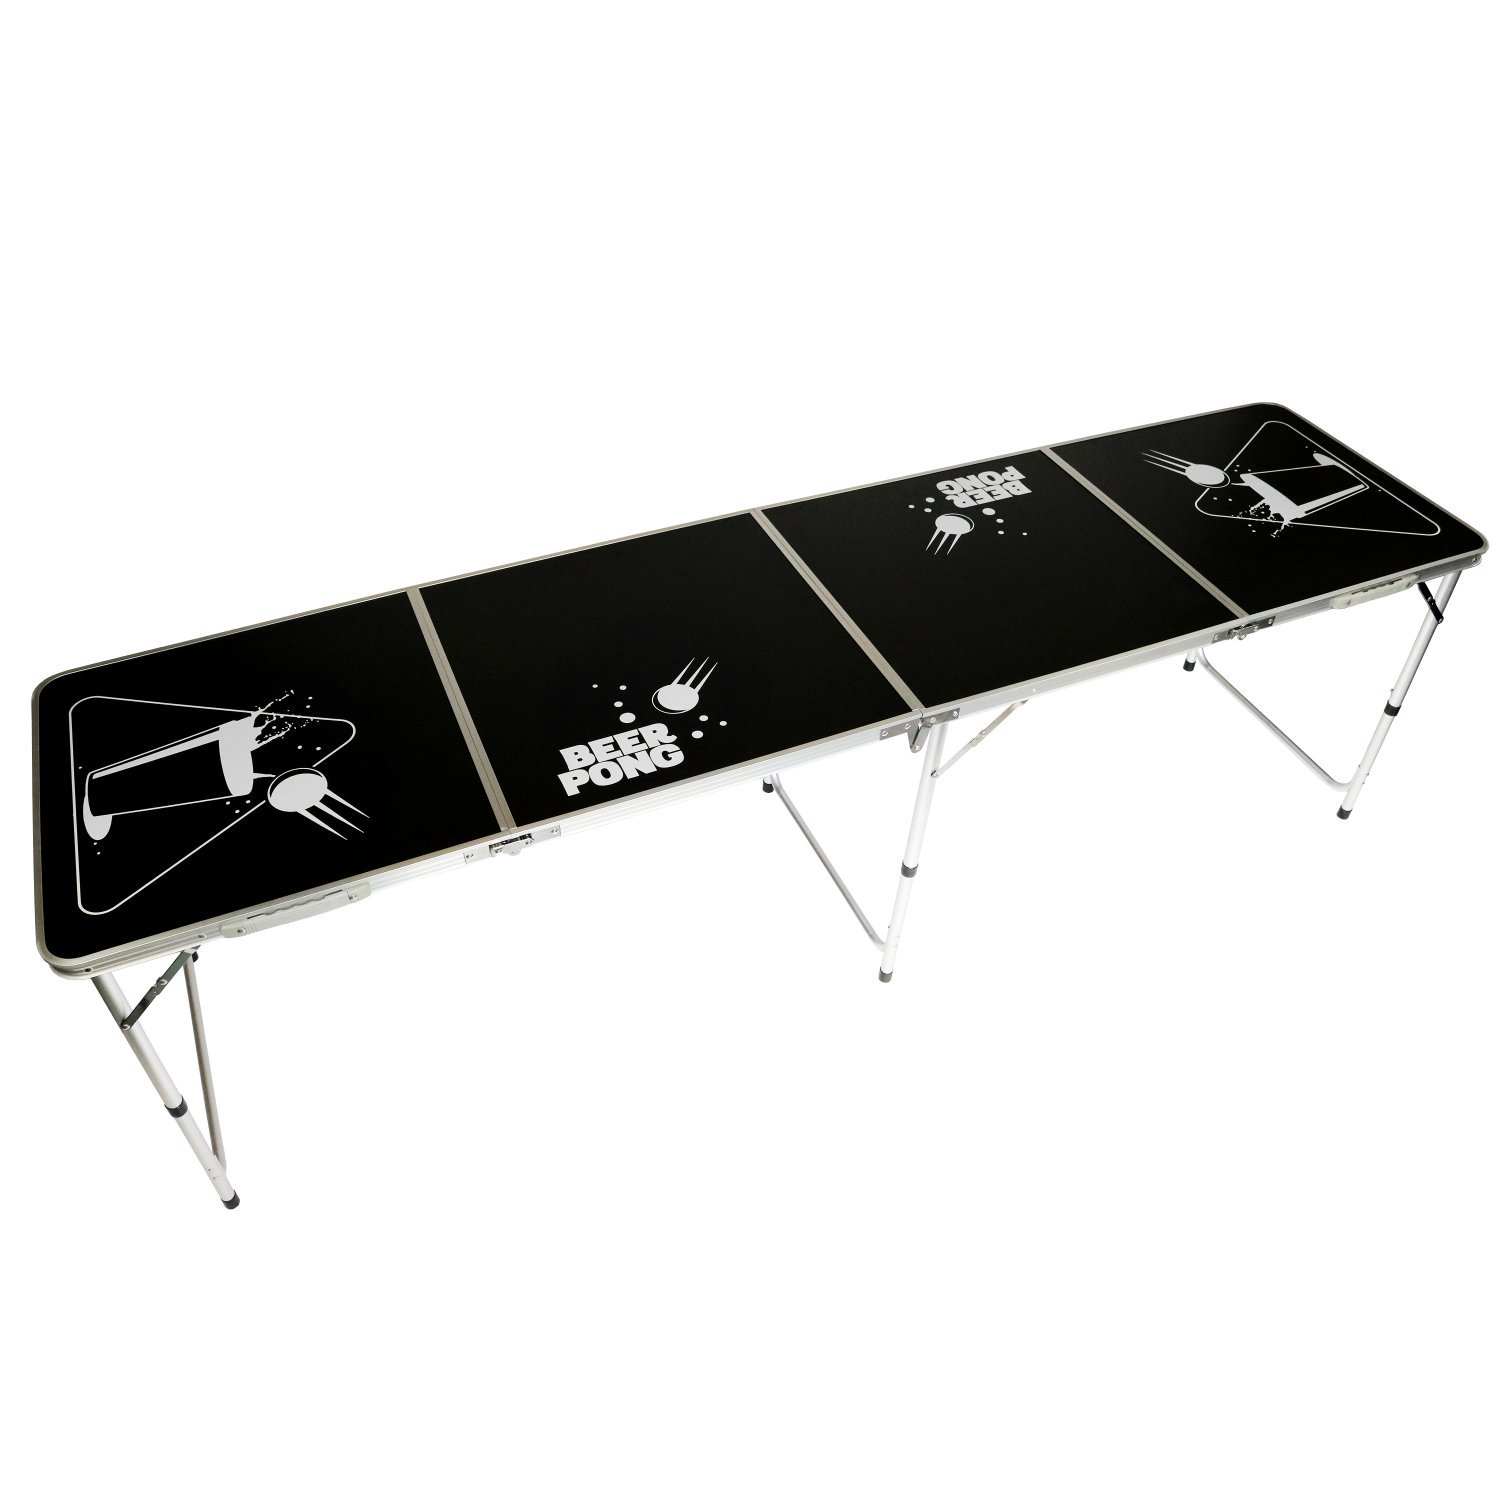 Fabulous Official Size 8 Foot Folding Beer Pong Table Bbq Drinking Download Free Architecture Designs Scobabritishbridgeorg